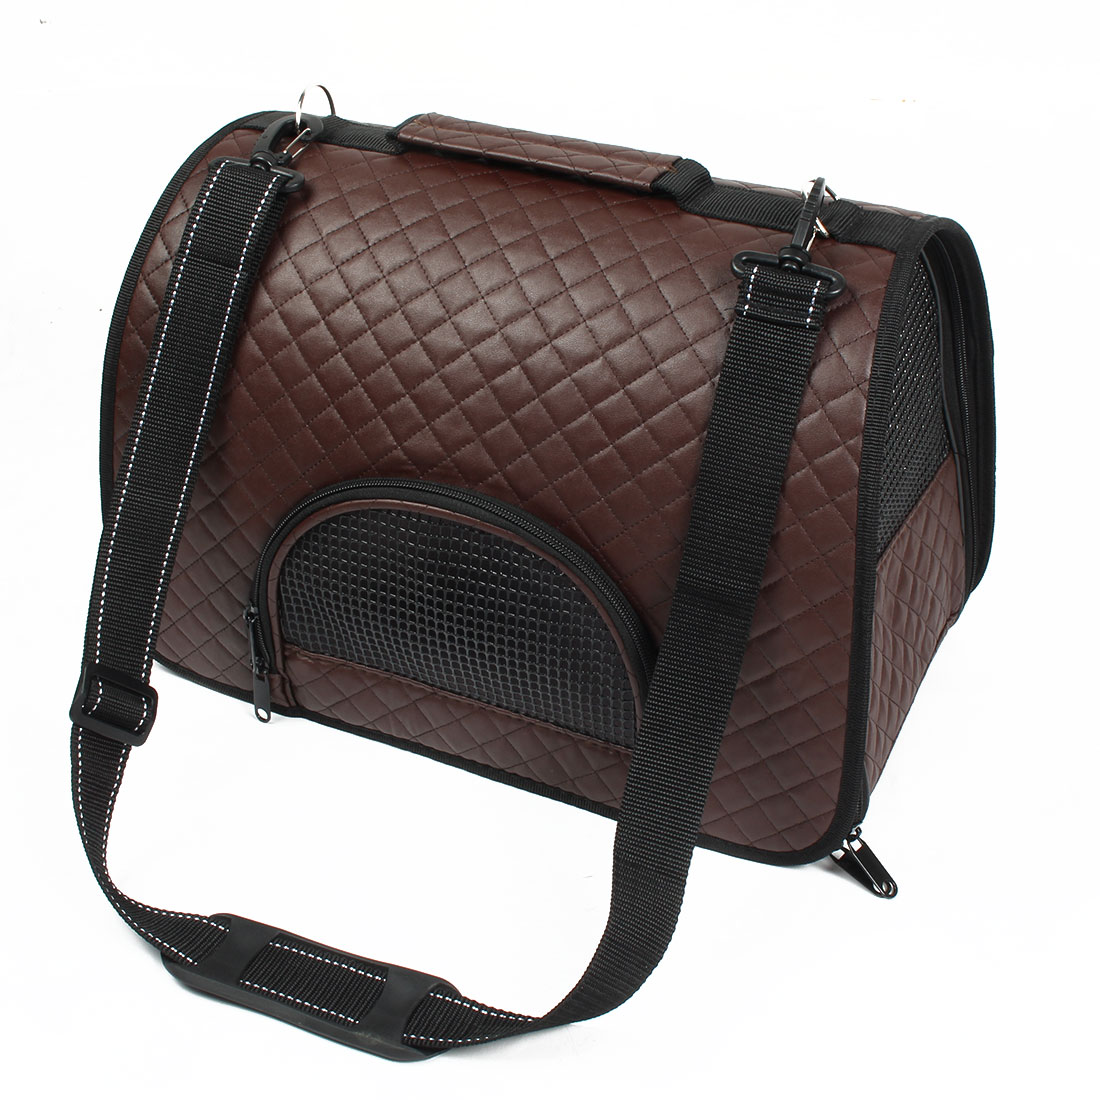 Travel Soft Faux Leather Meshy Double Sided Zipper Pet Puppy Carrier Bag Brown